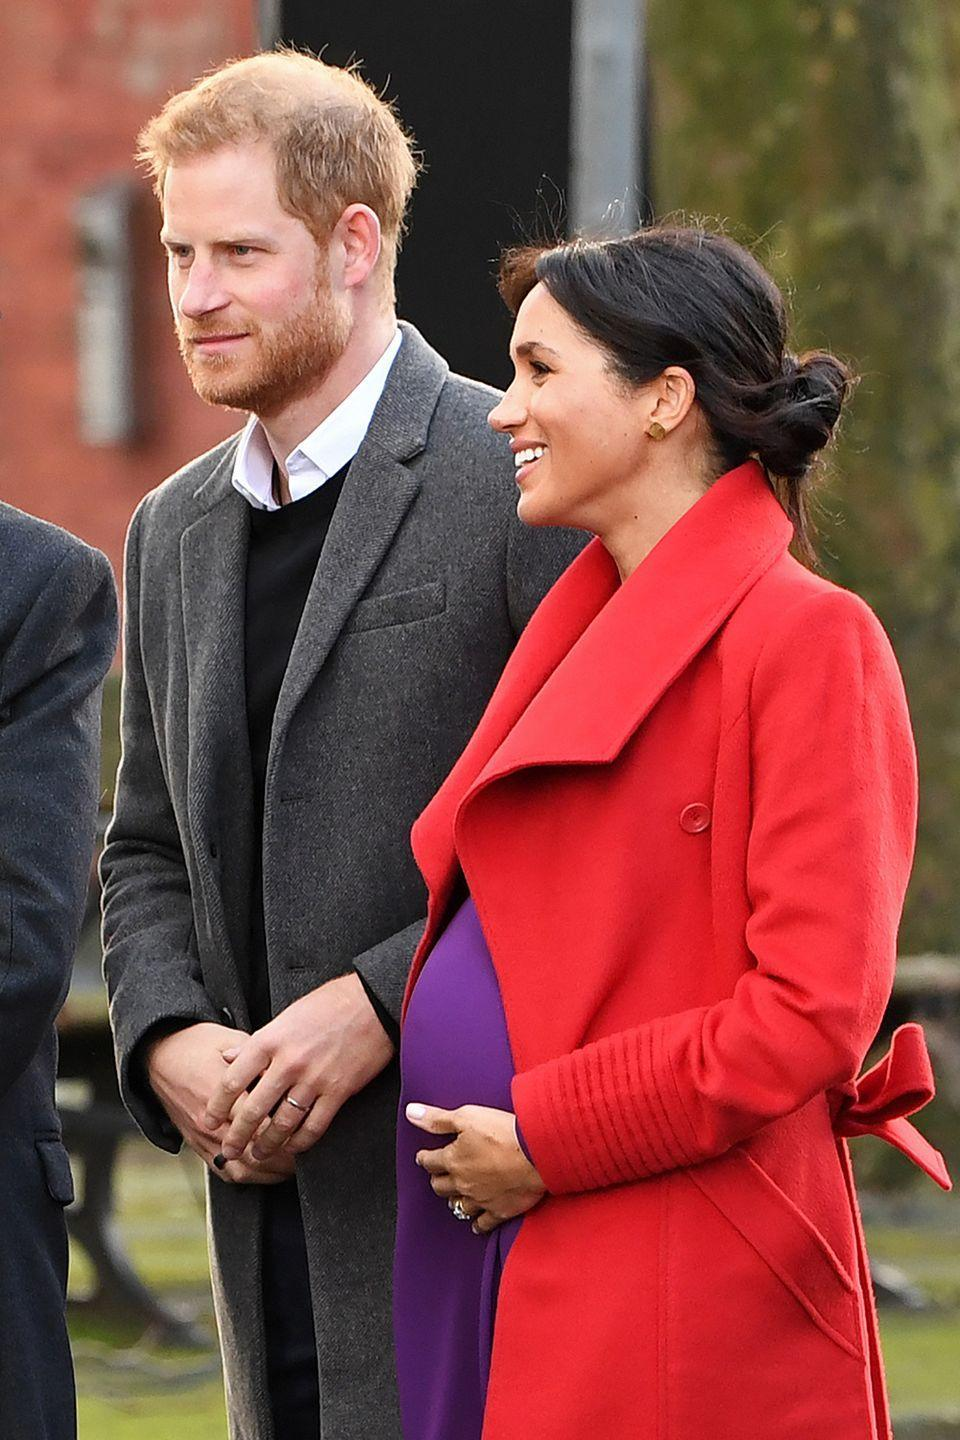 <p>While Meghan generally stuck to wearing black for a lot of outings during her pregnancy, in Birkenhead in January 2019, where she was visiting with husband Prince Harry on their first official engagement of 2019 together, the Duchess opted for a bump-hugging bright purple dress. Meghan's bump looked pretty pronounced by then, even though she had almost four months of pregnancy left to go.<br></p>